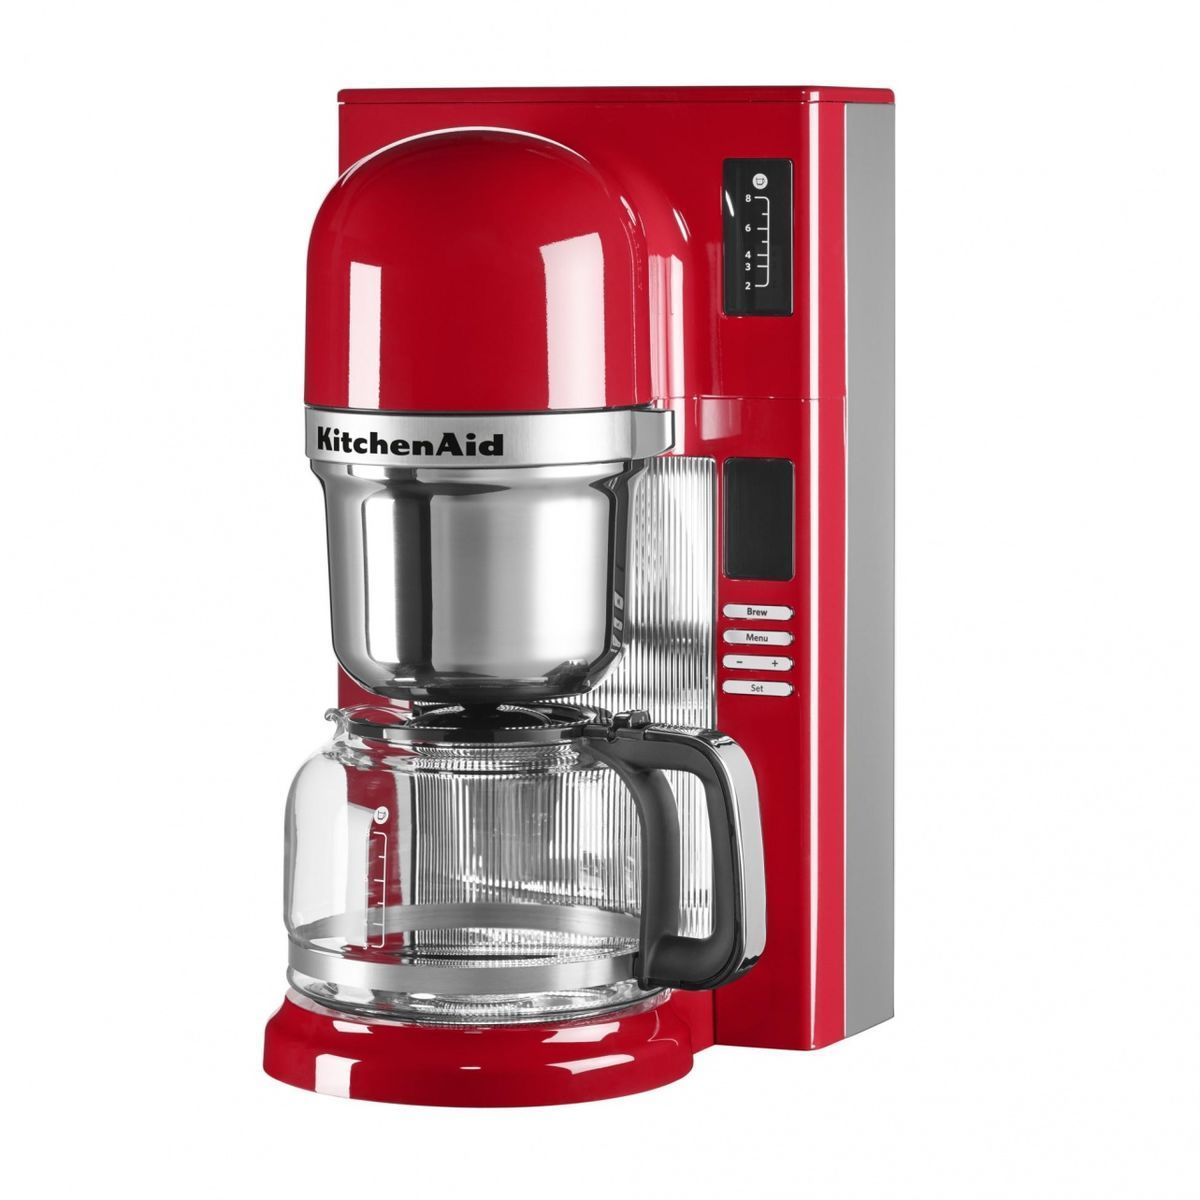 Kitchenaid Pour Over Coffee Maker Filters : KitchenAid 5KCM0802 Pour Over Coffee Brewer KitchenAid High-Tech AmbienteDirect.com